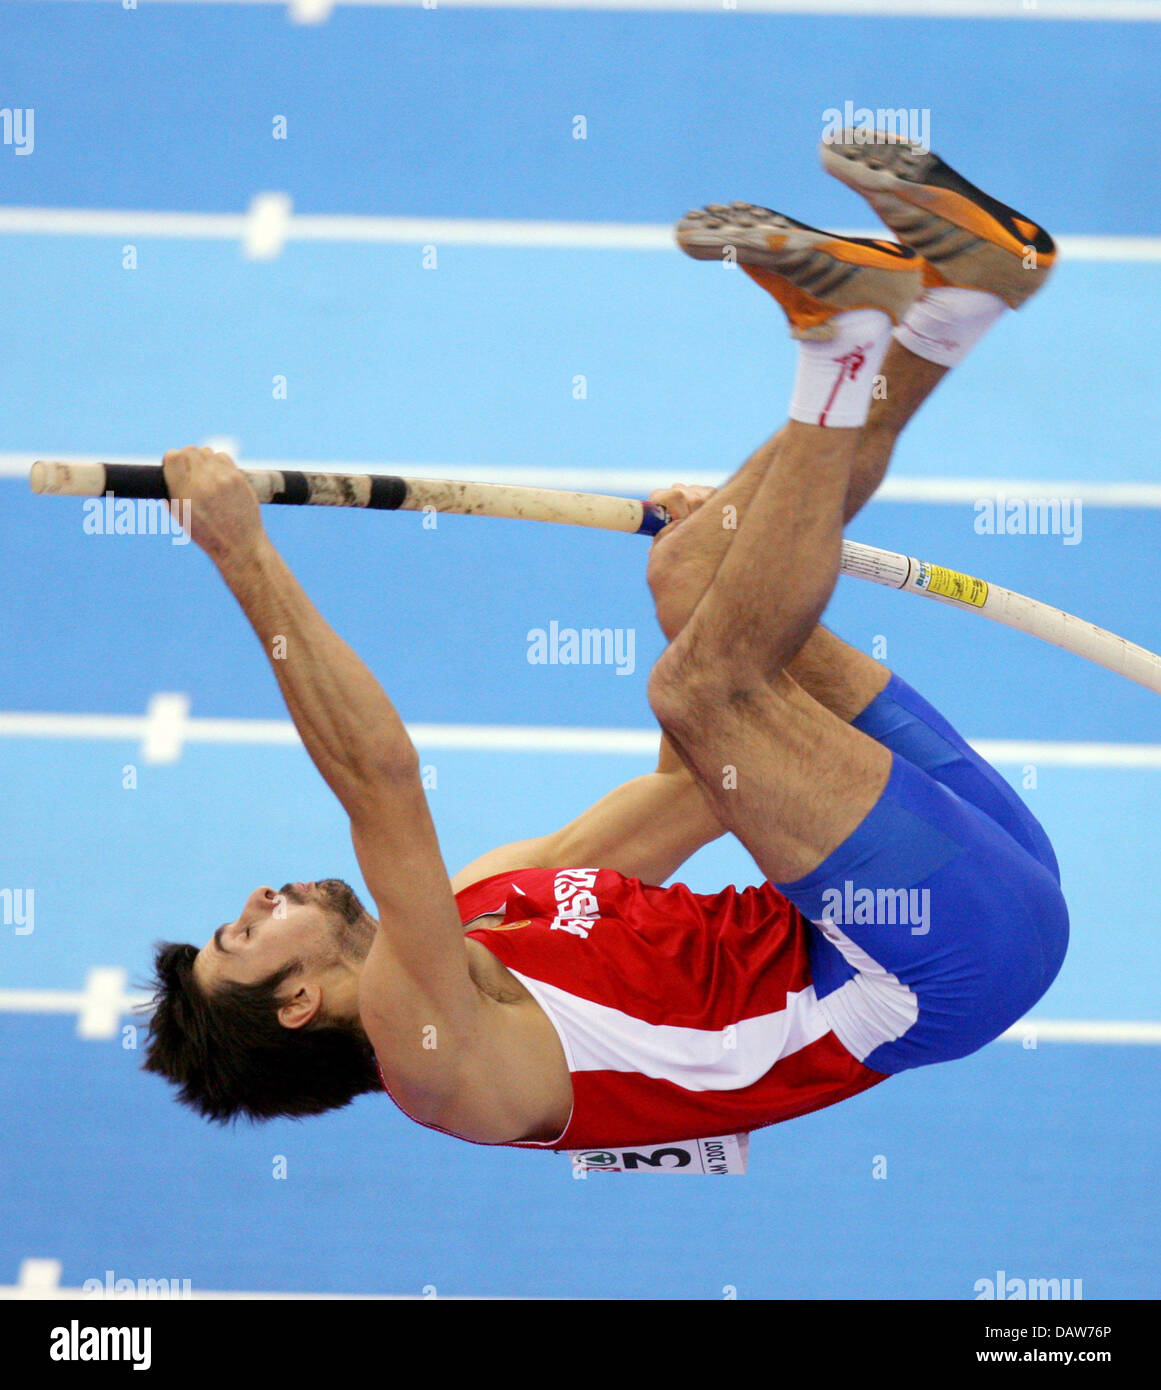 Russina decathlete Alexander Pogorelow shown in action during the pole vault of the decathlon competition at the Stock Photo